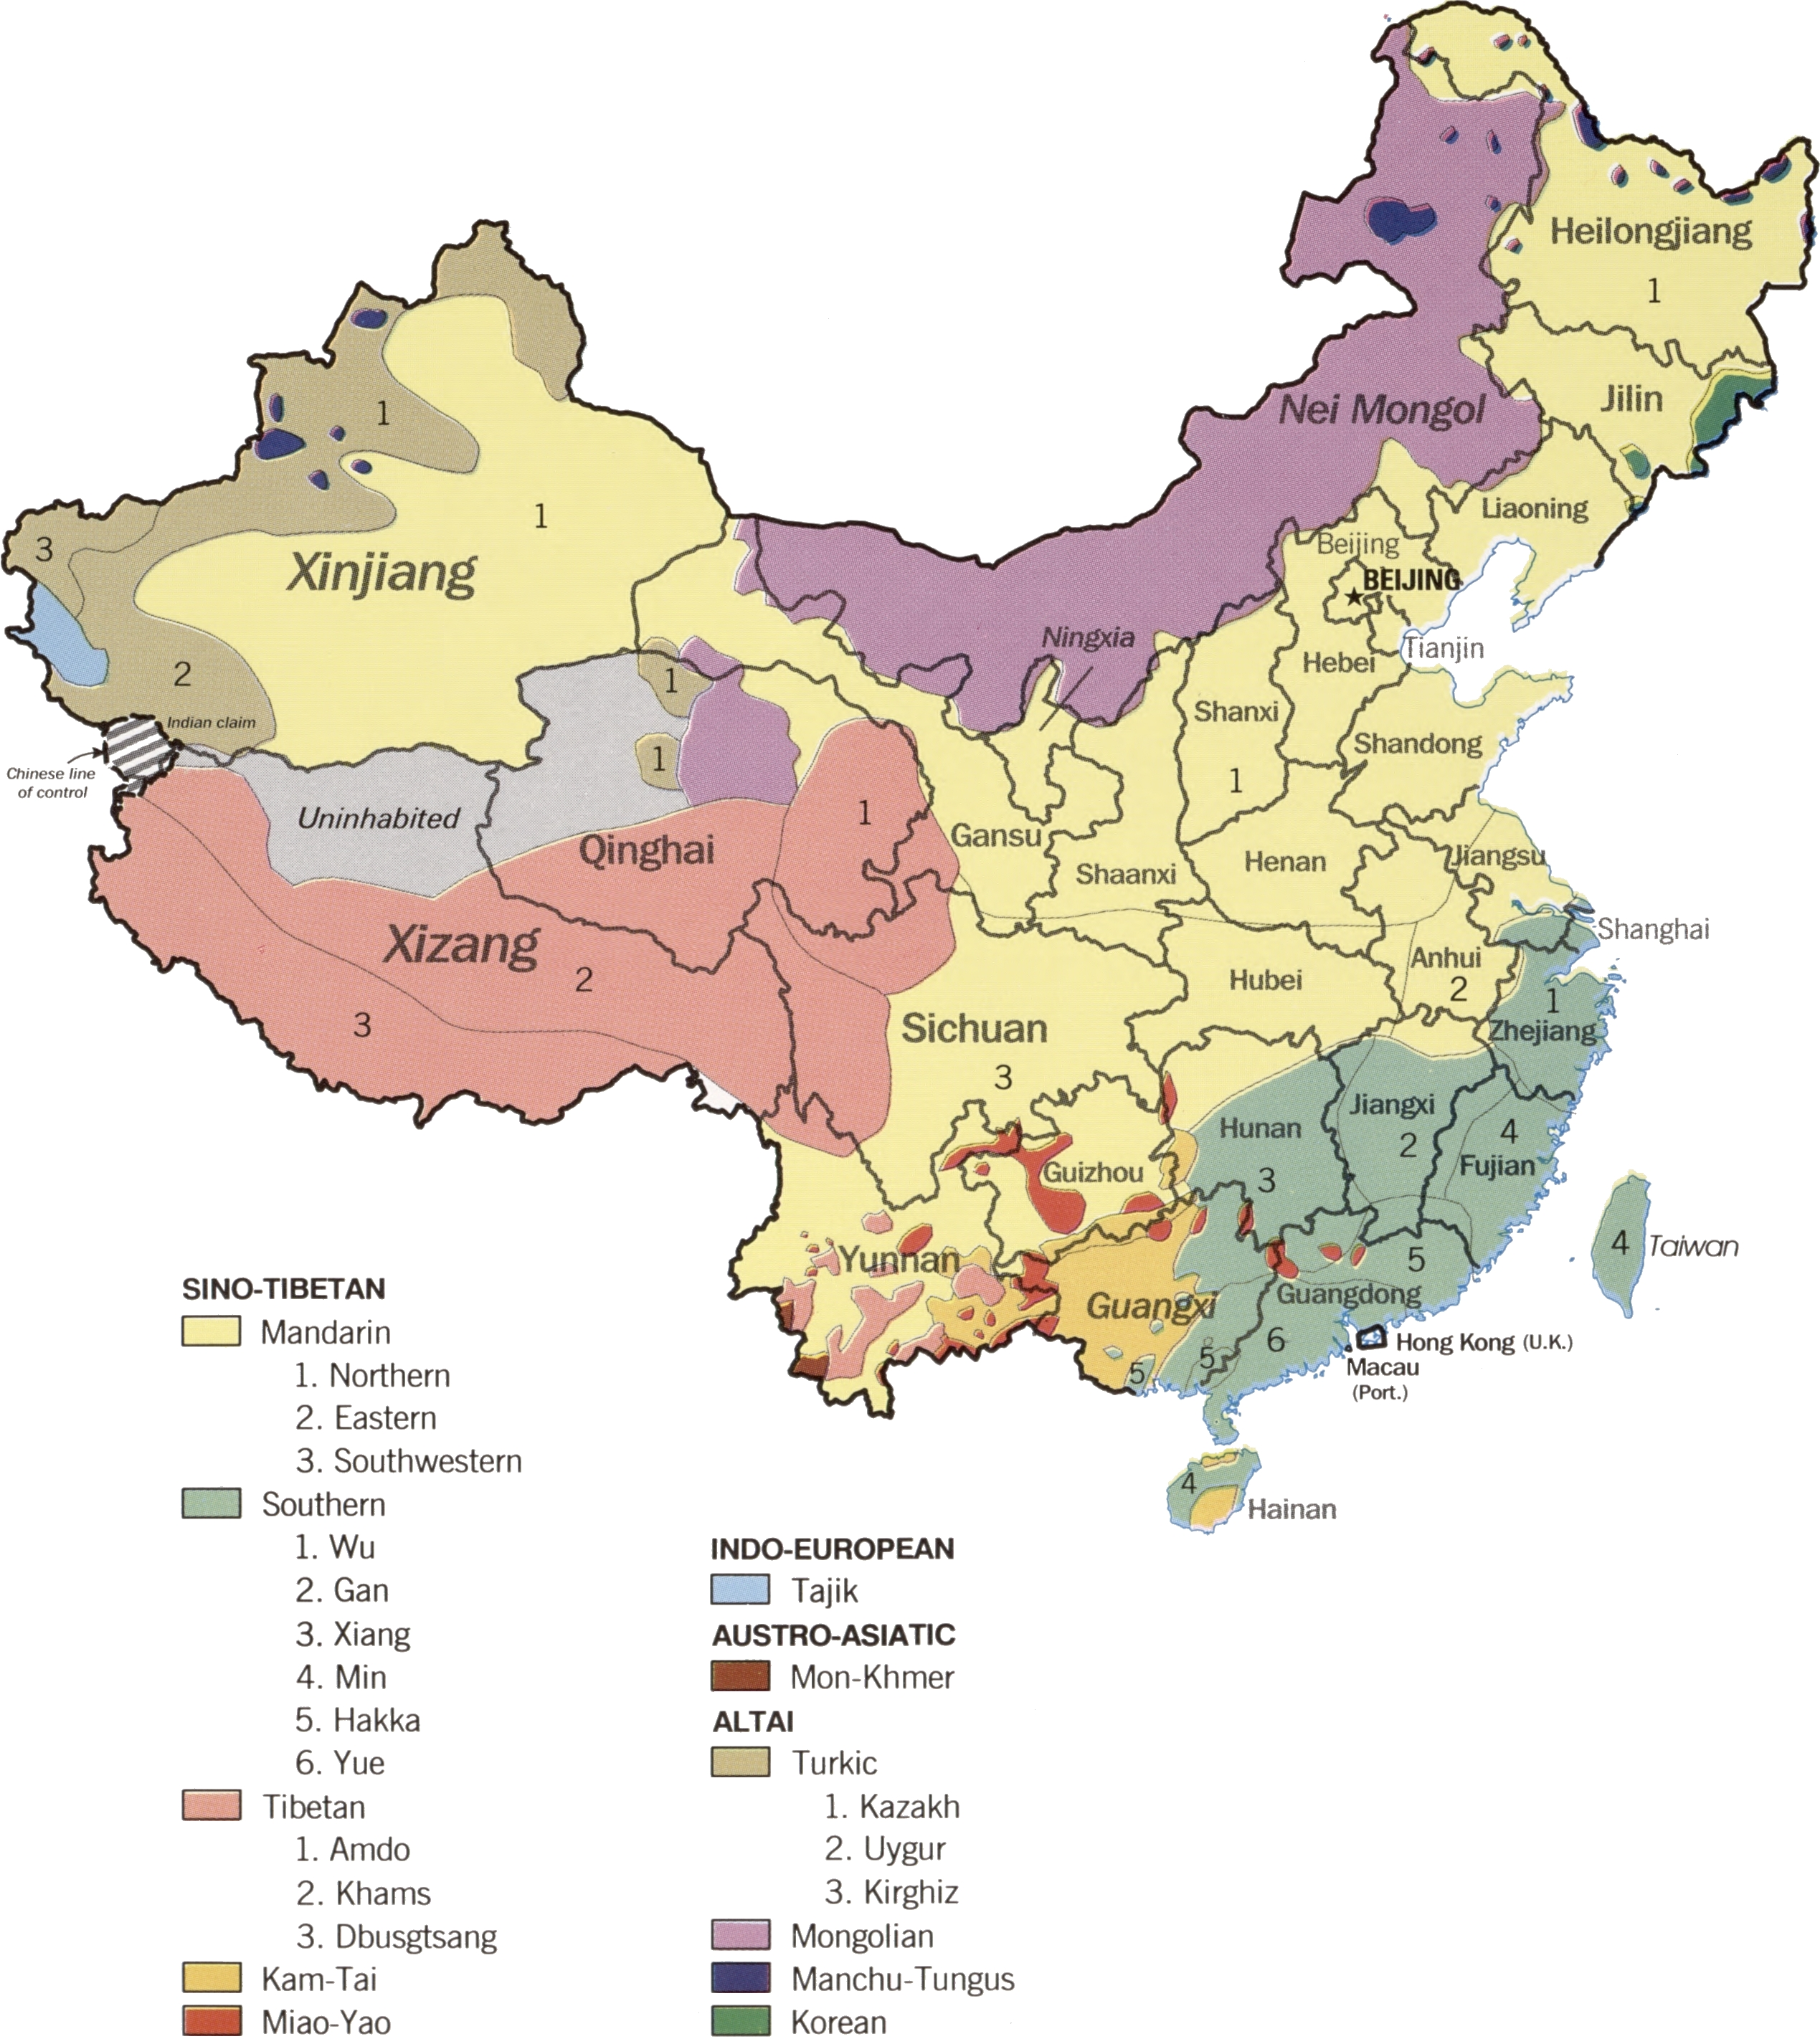 China Linguistic Map Map Collection - Linguistic map of the world